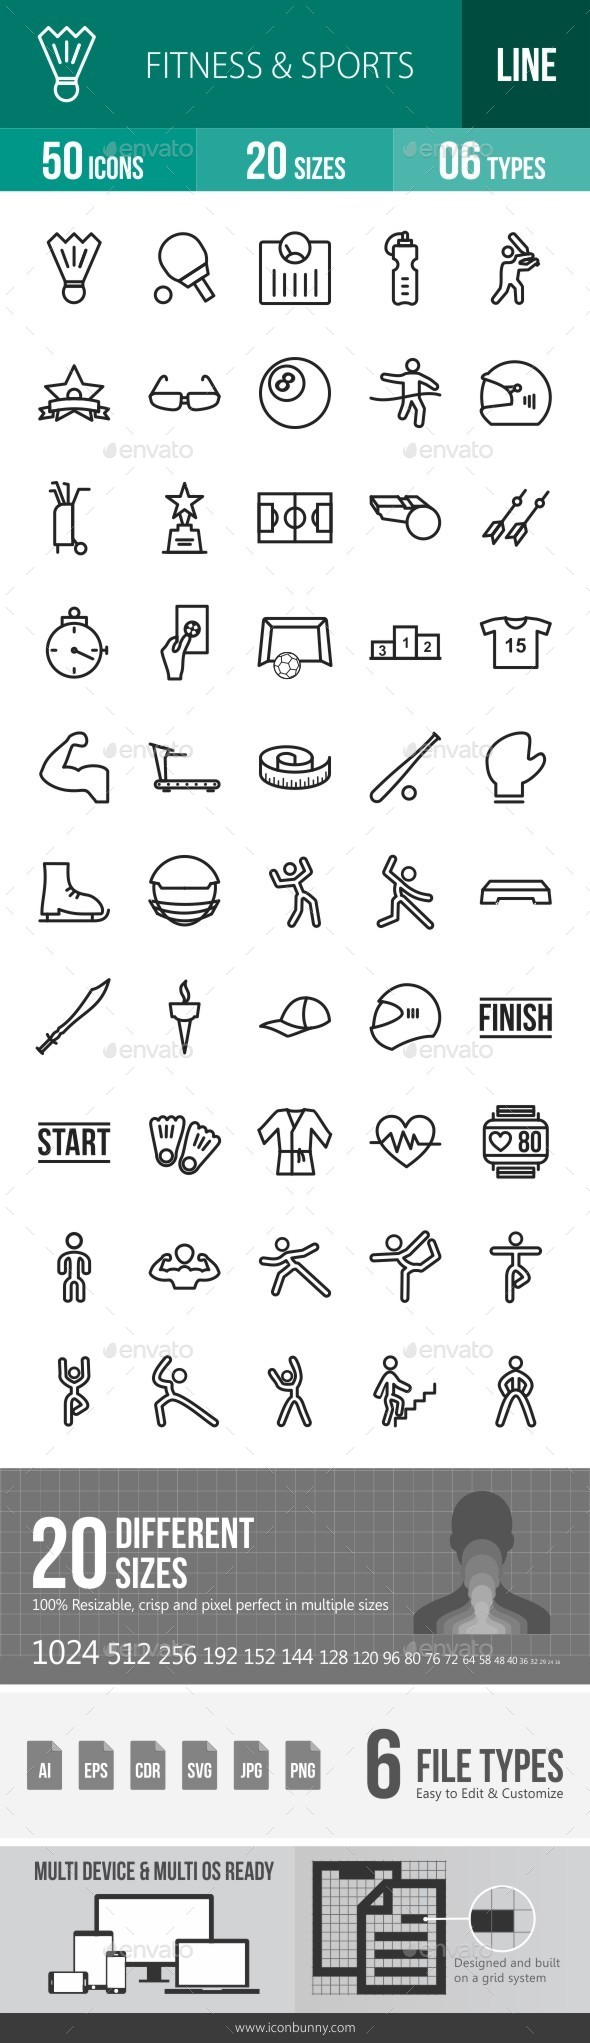 Fitness & Sports Line Icons - Icons